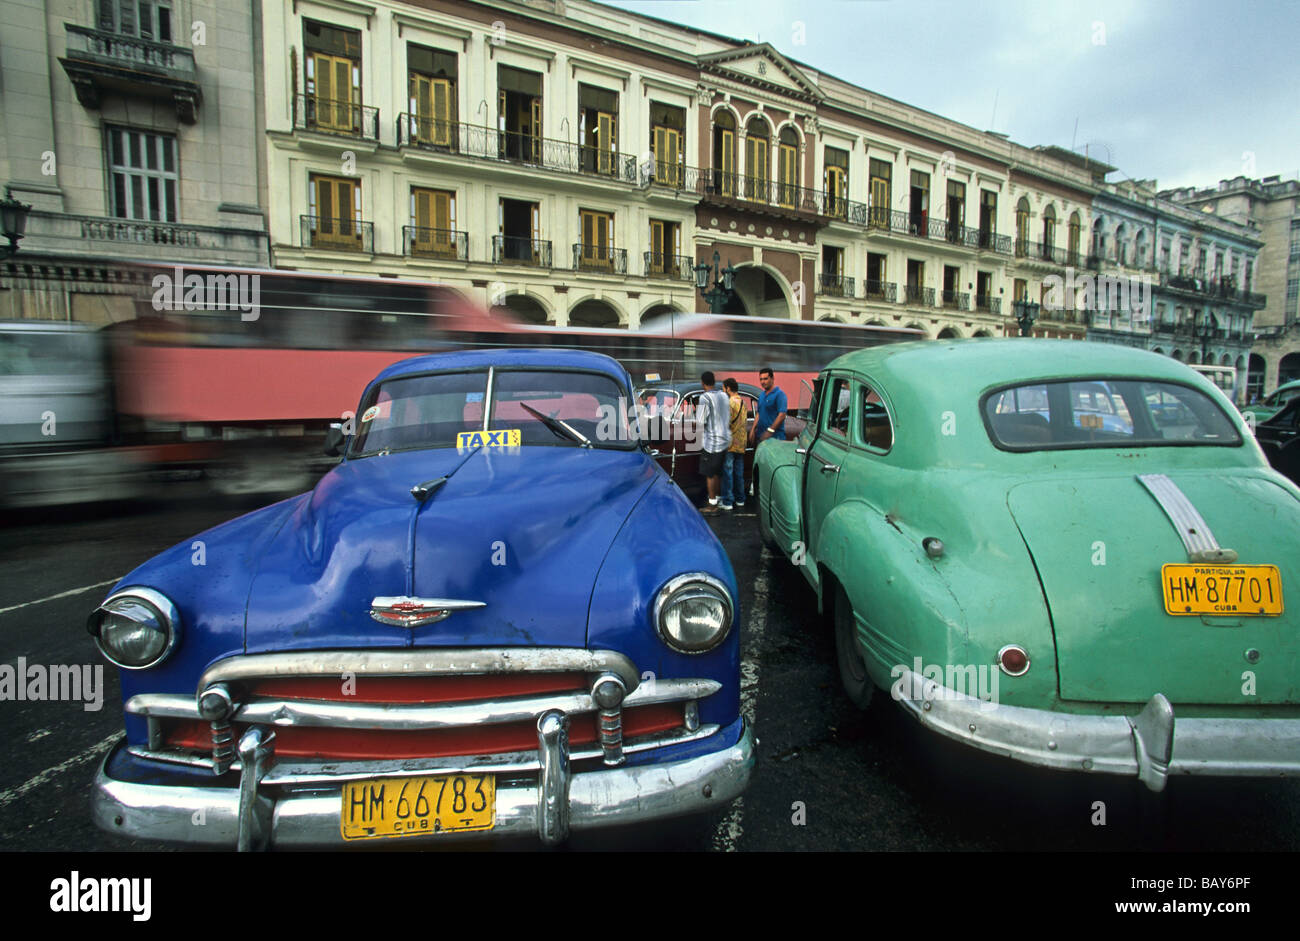 vintage cars used as Taxis, parked, Havana, Cuba Stock Photo ...